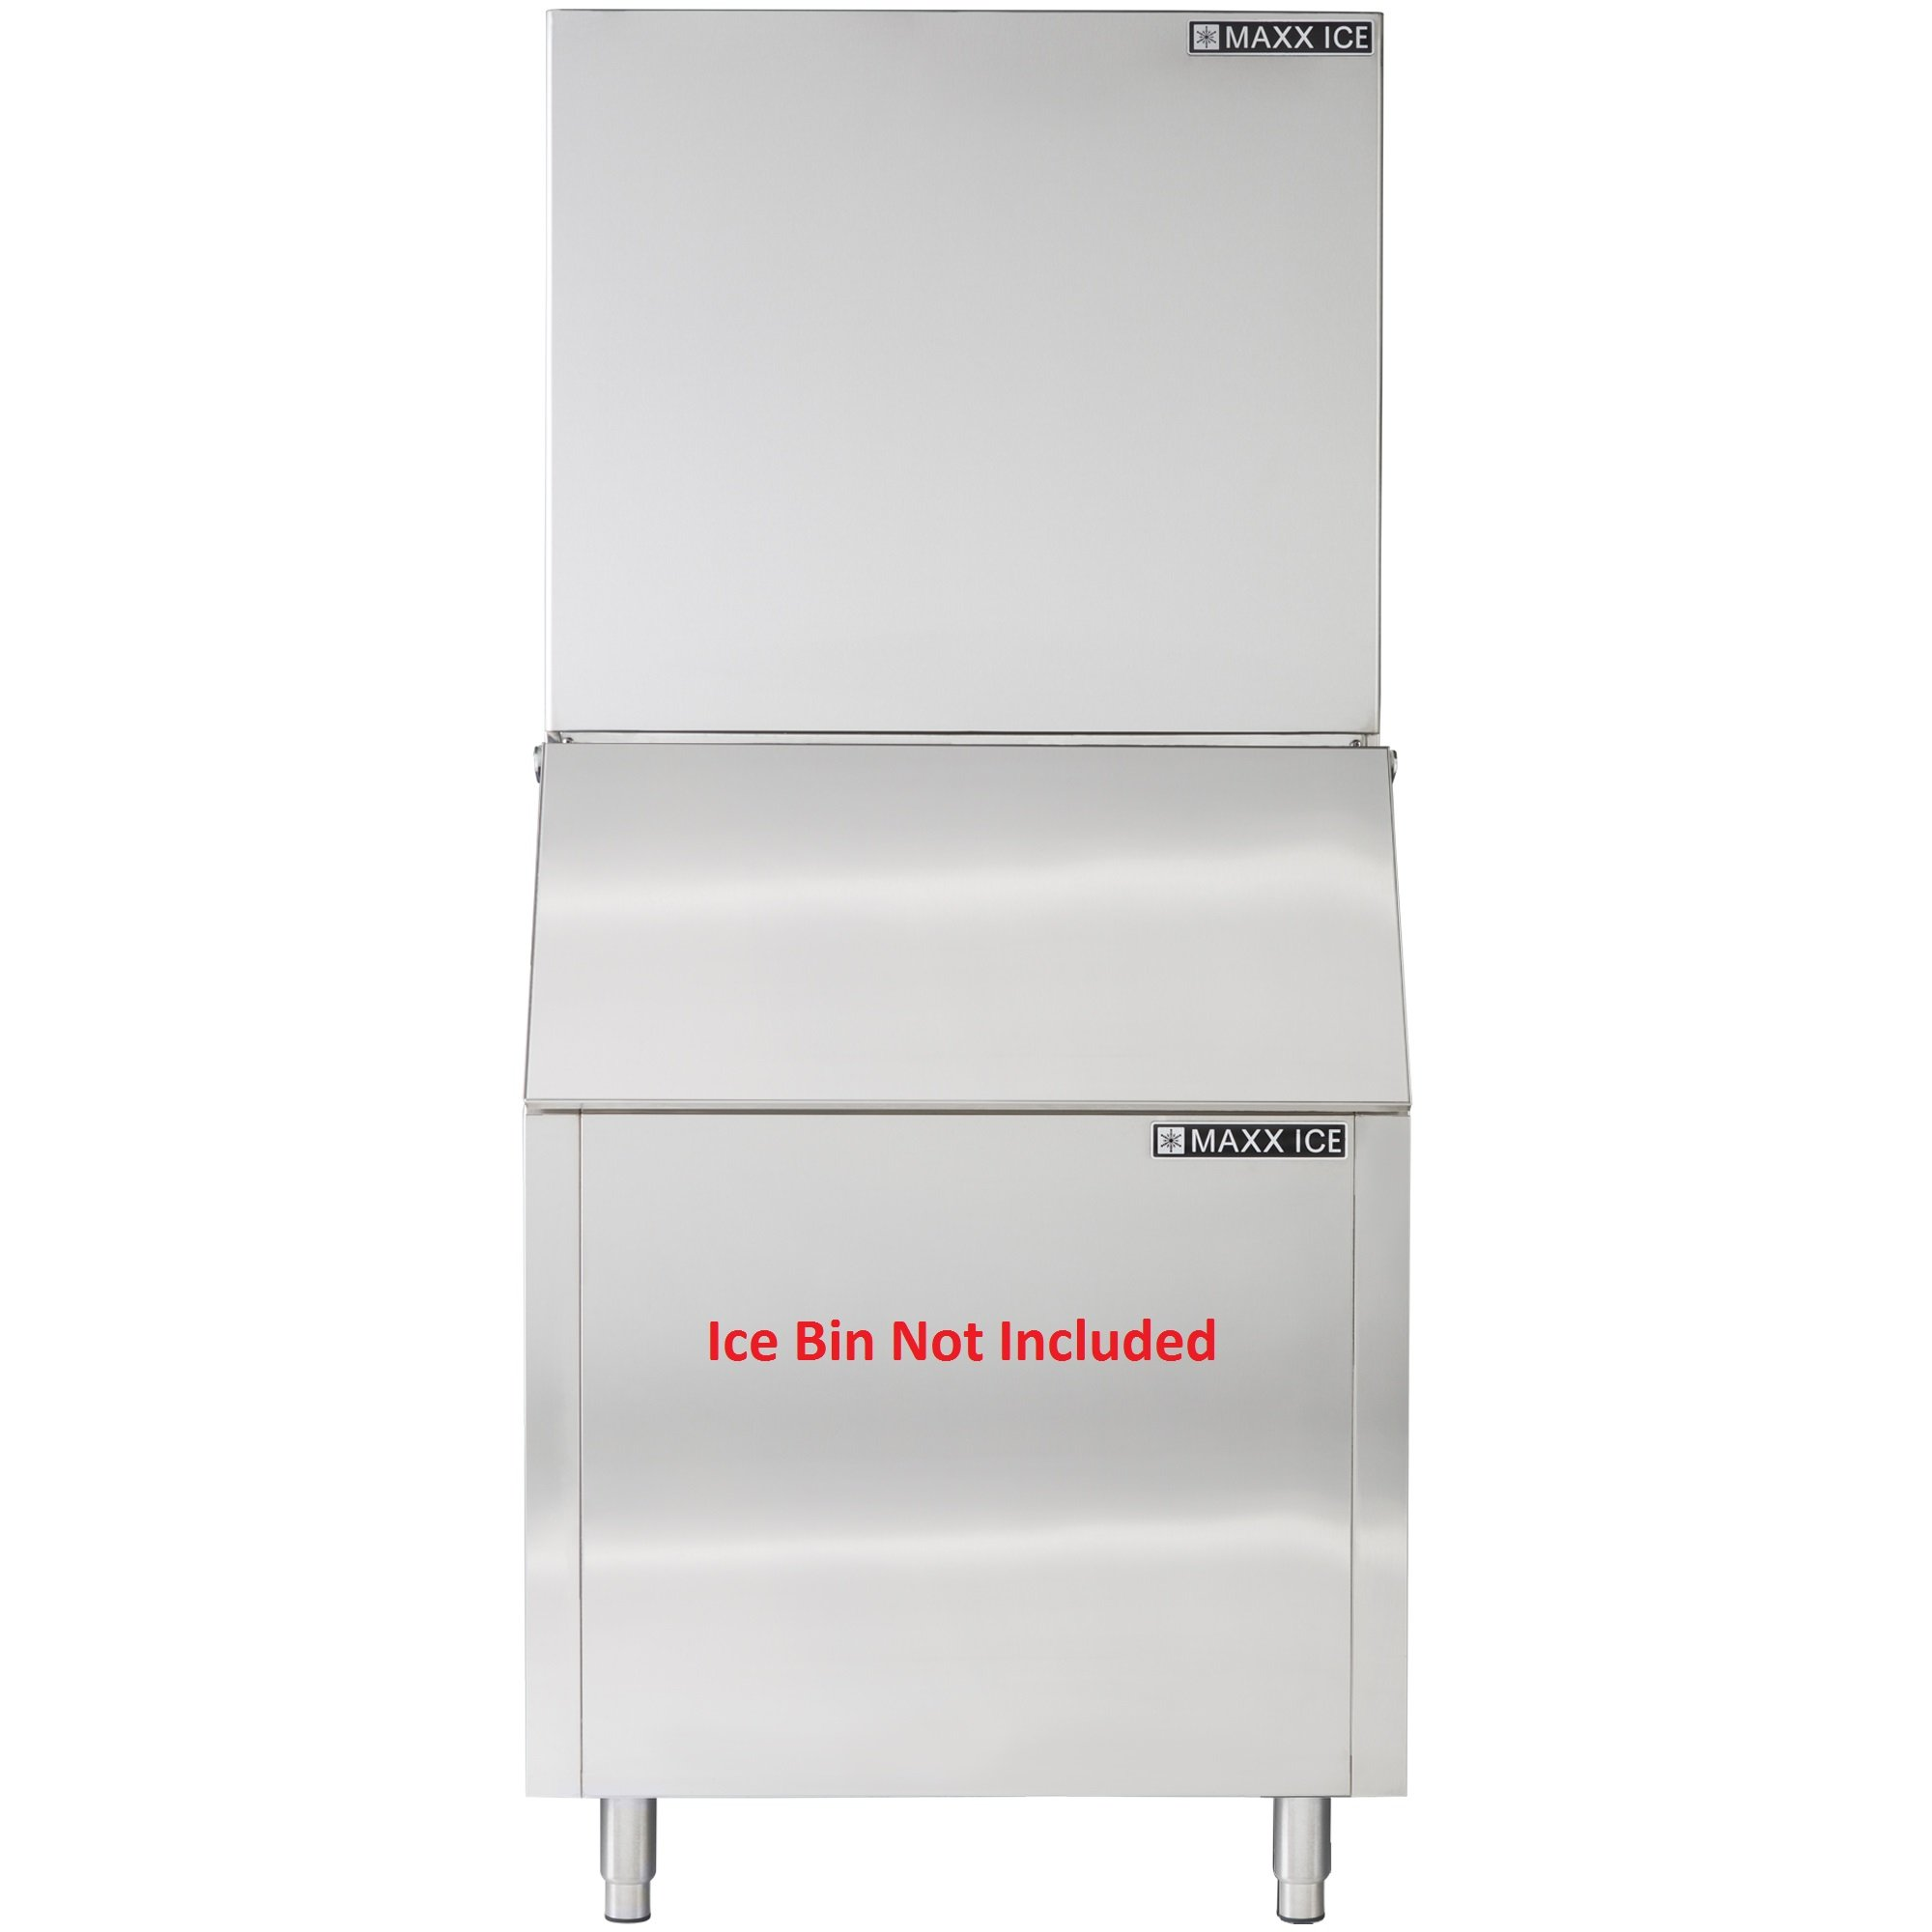 Maxx Ice MIM1000X Modular 1000 Pound Stainless Steel Commercial Clear Ice Maker Cuber - REFURBISHED